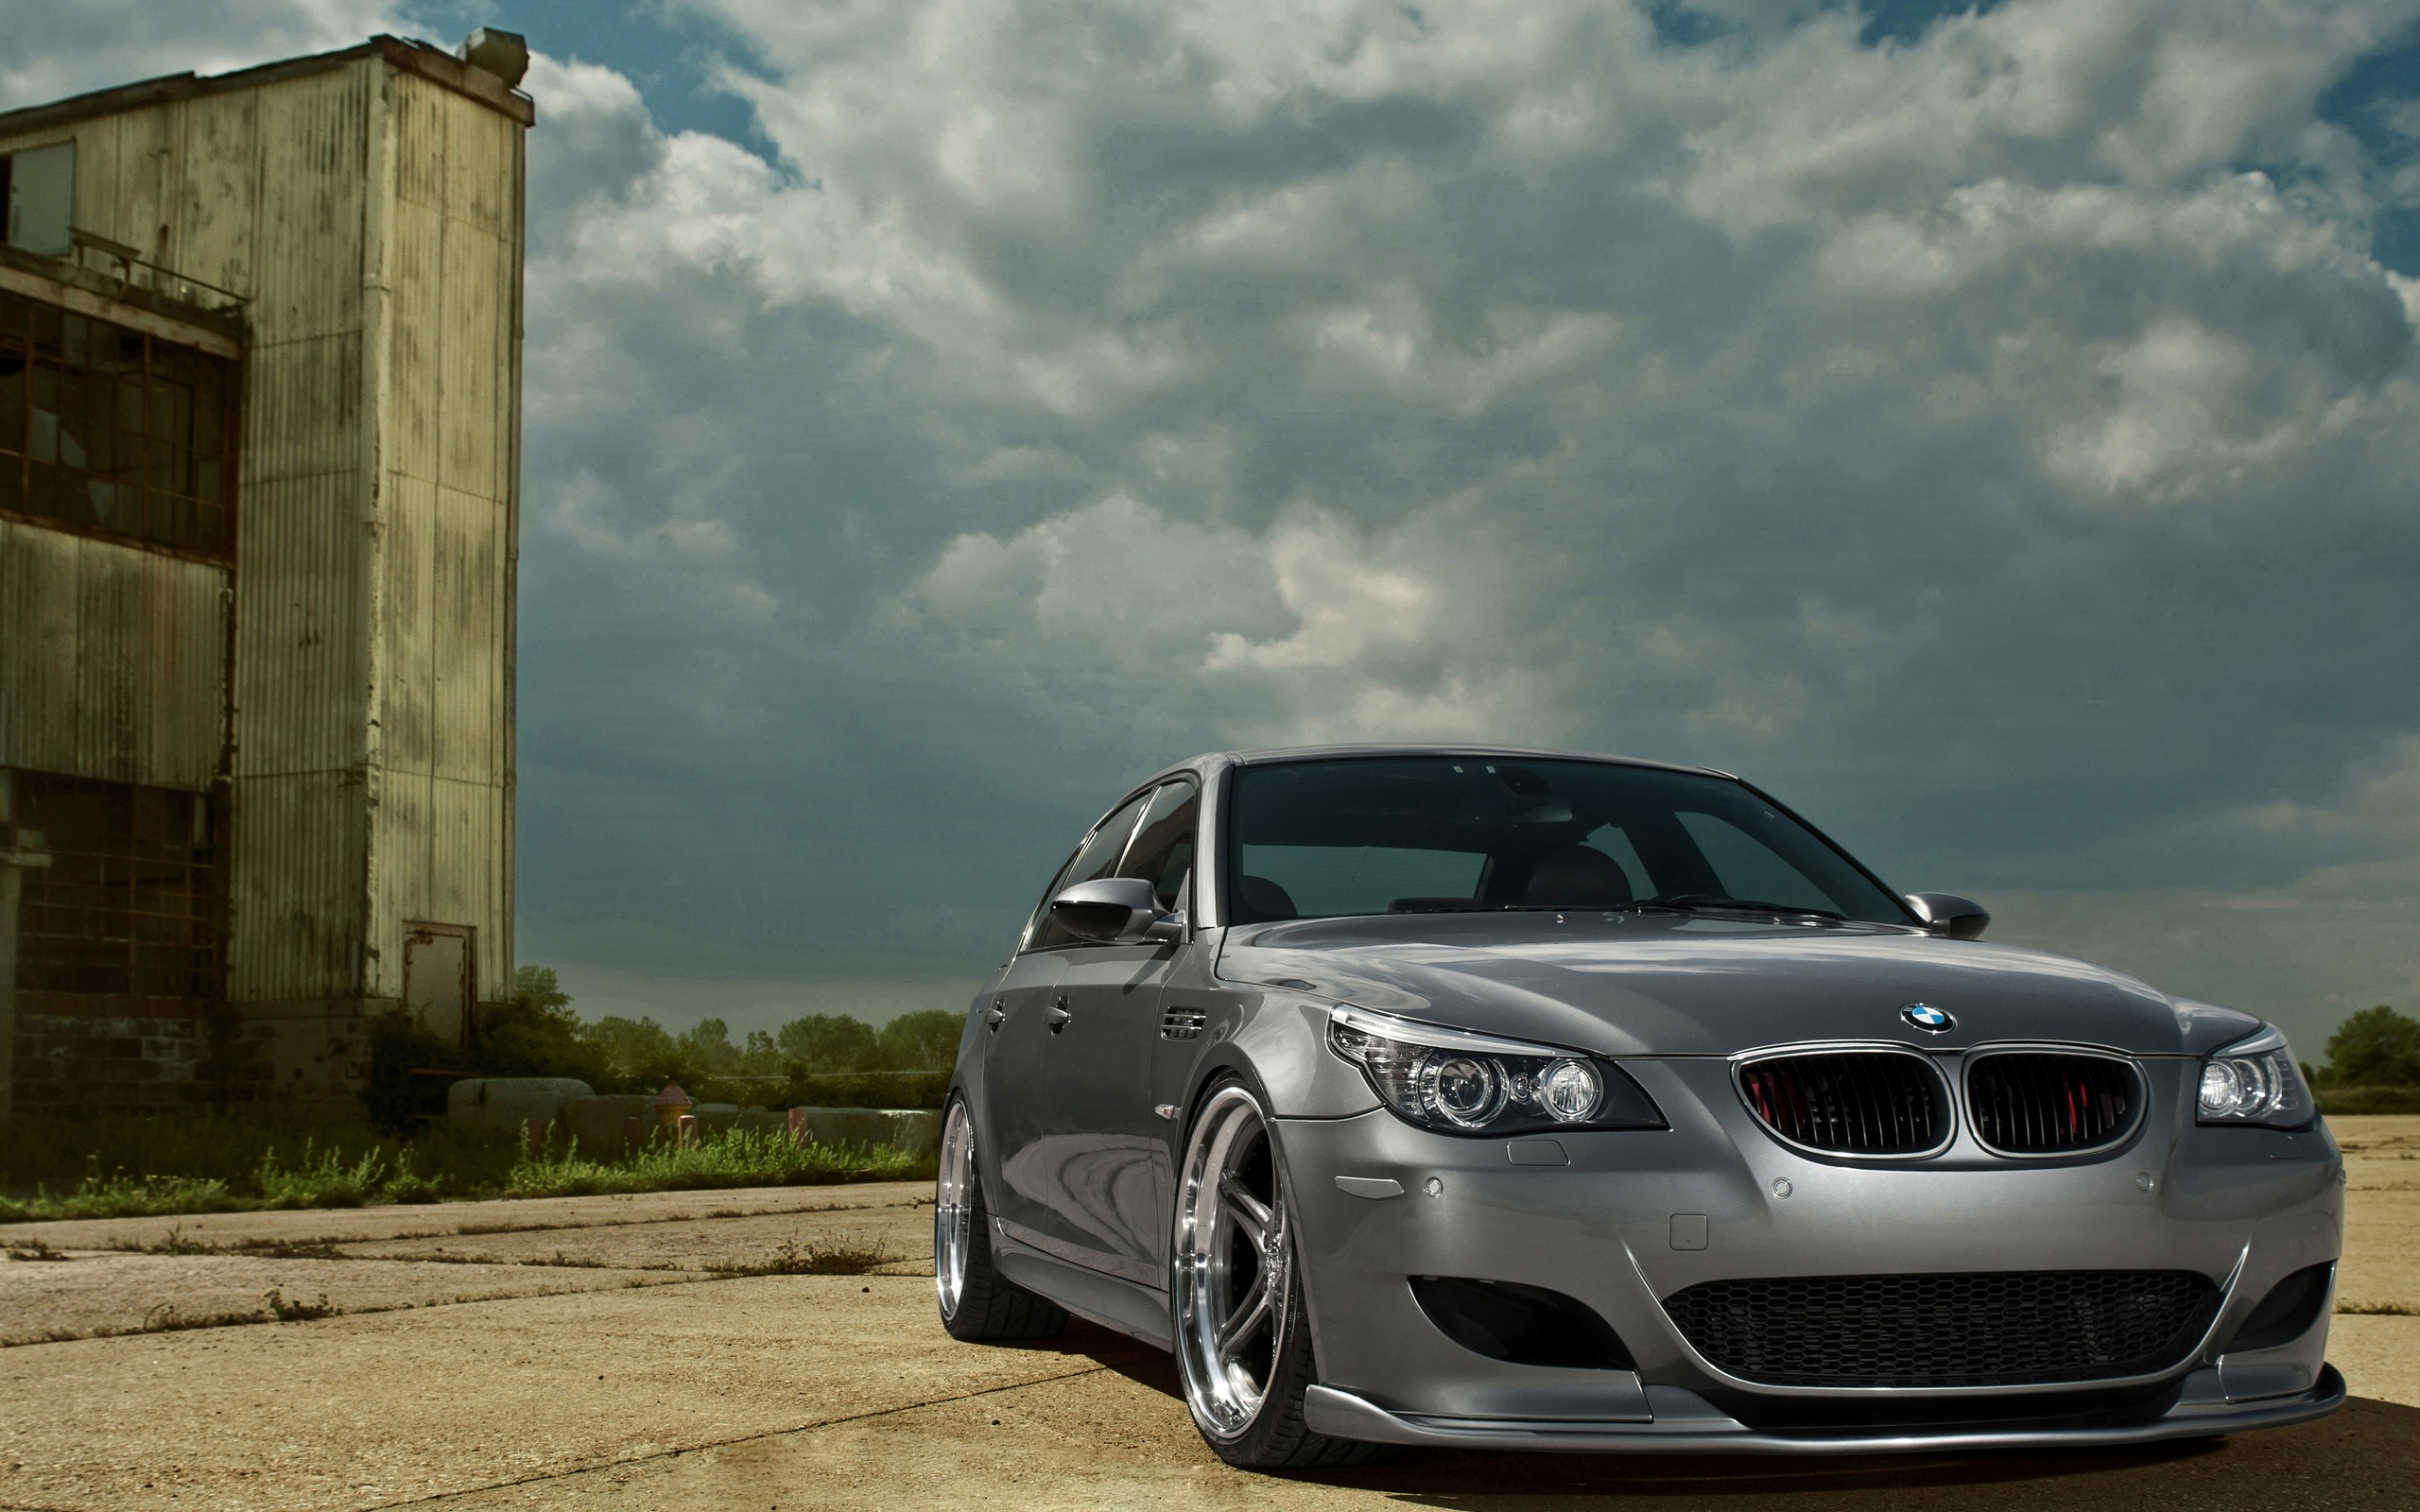 Must see Wallpaper High Quality Bmw - bmw-m5-wallpaper-43987-45079-hd-wallpapers  Gallery_634679.jpg